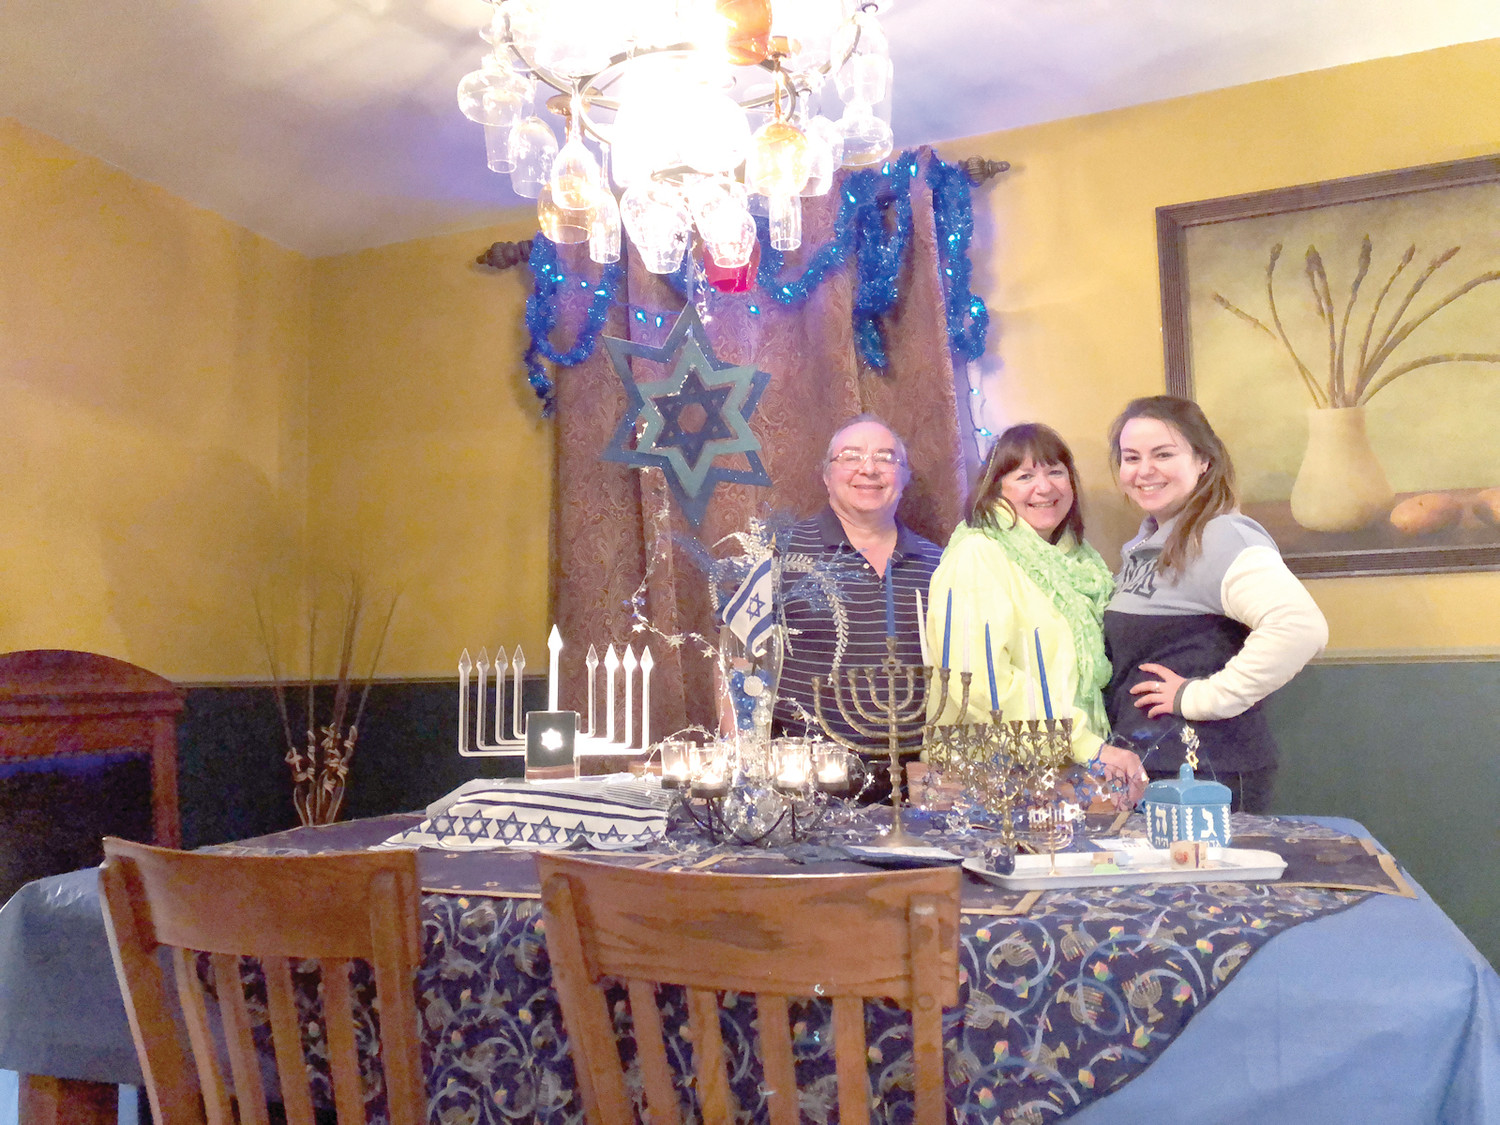 OH, THOSE 8 CRAZY NIGHTS: John, Laura and Sylvia smile as they prepare to light their menorahs in observance of Hanukkah.